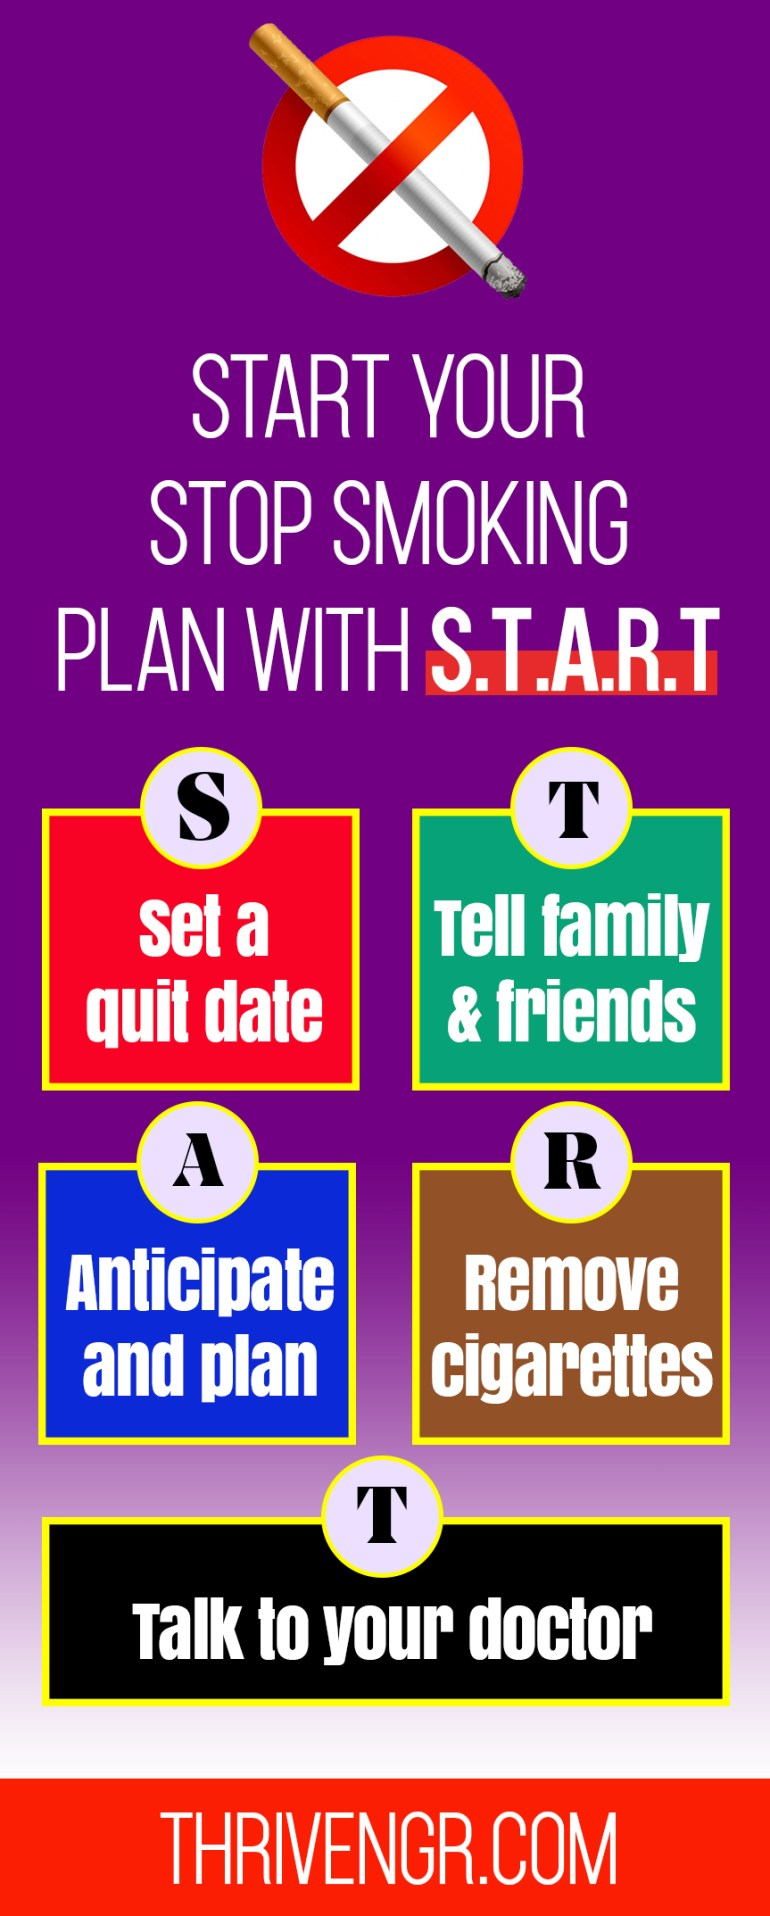 Start your stop smoking plan with S.T.A.R.T